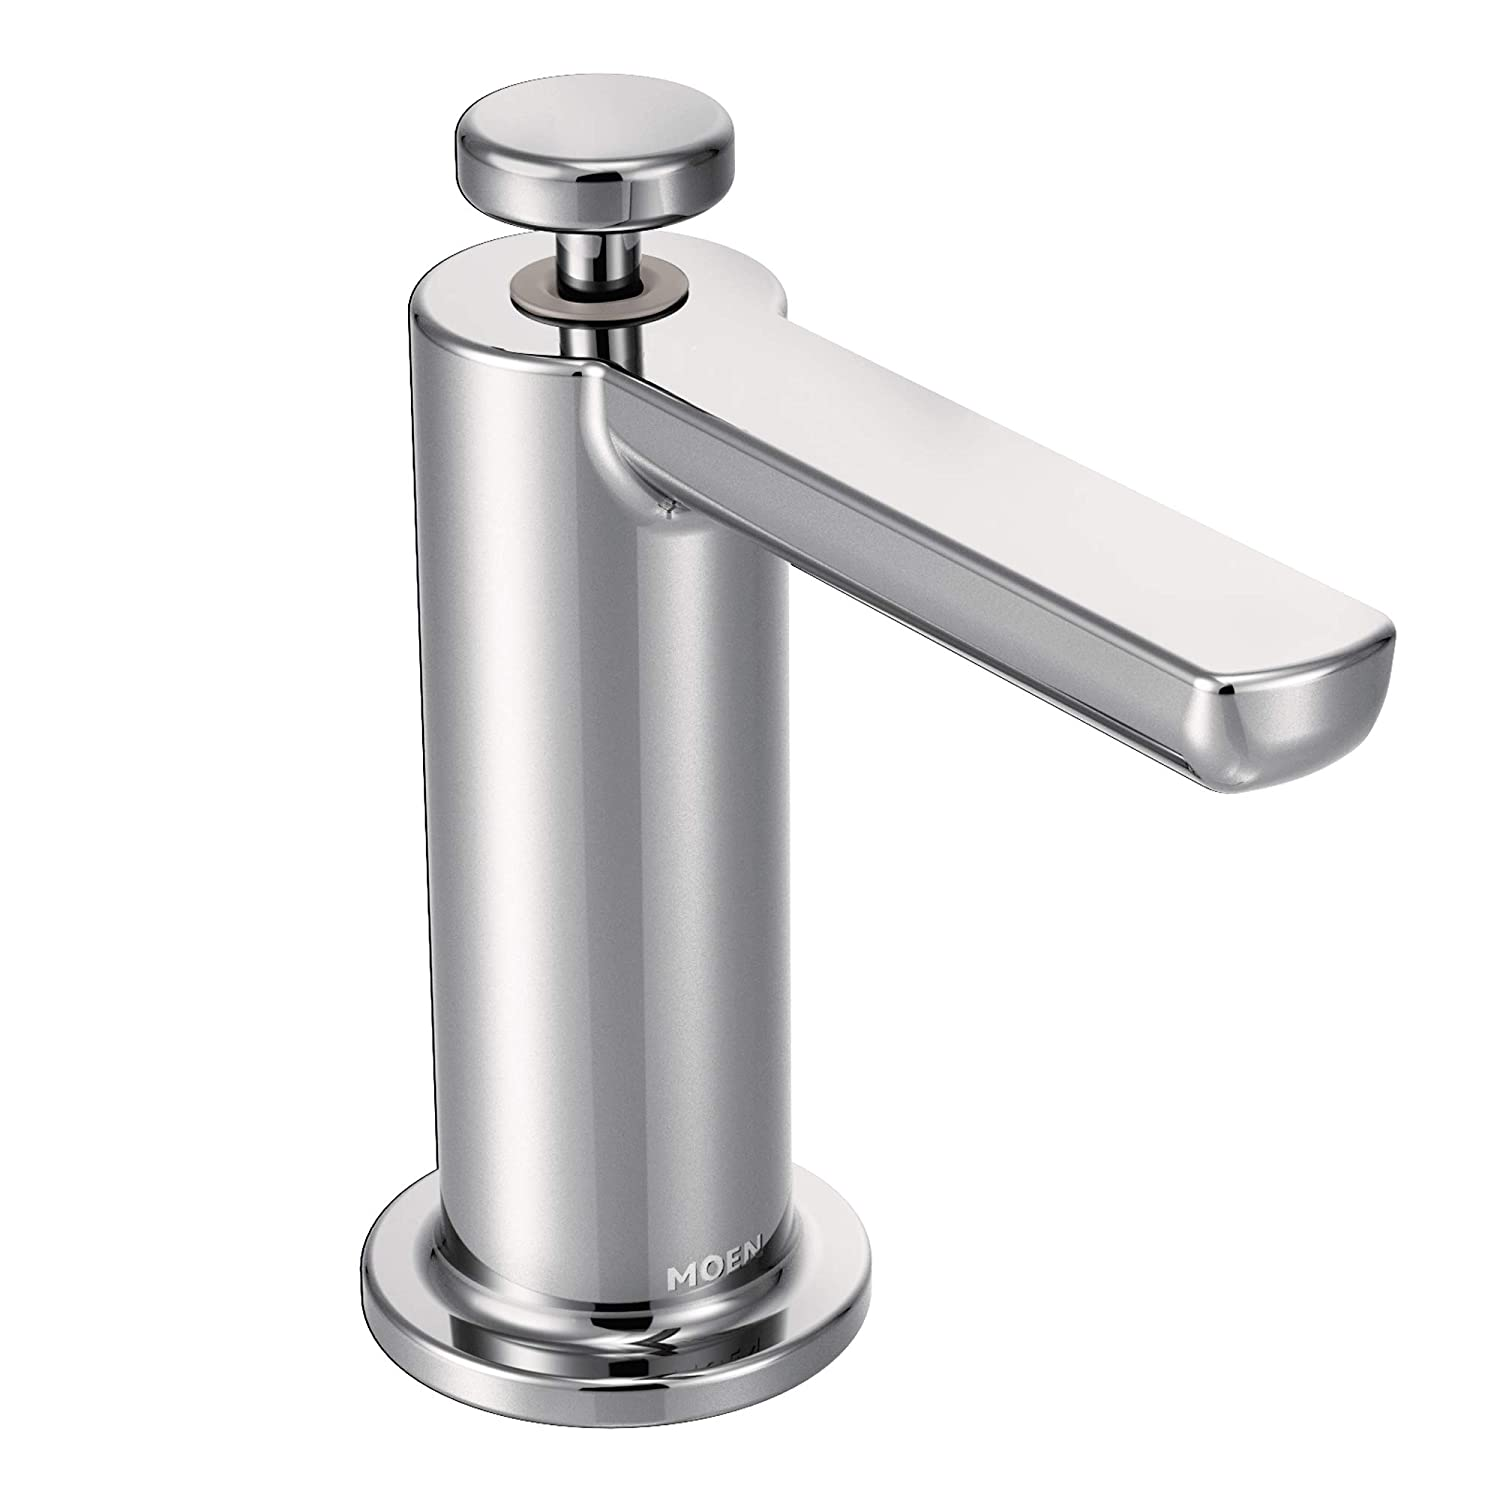 Moen S3947c Modern Deck Mounted Kitchen Soap Dispenser With Above The Sink Refillable Bottle Chrome